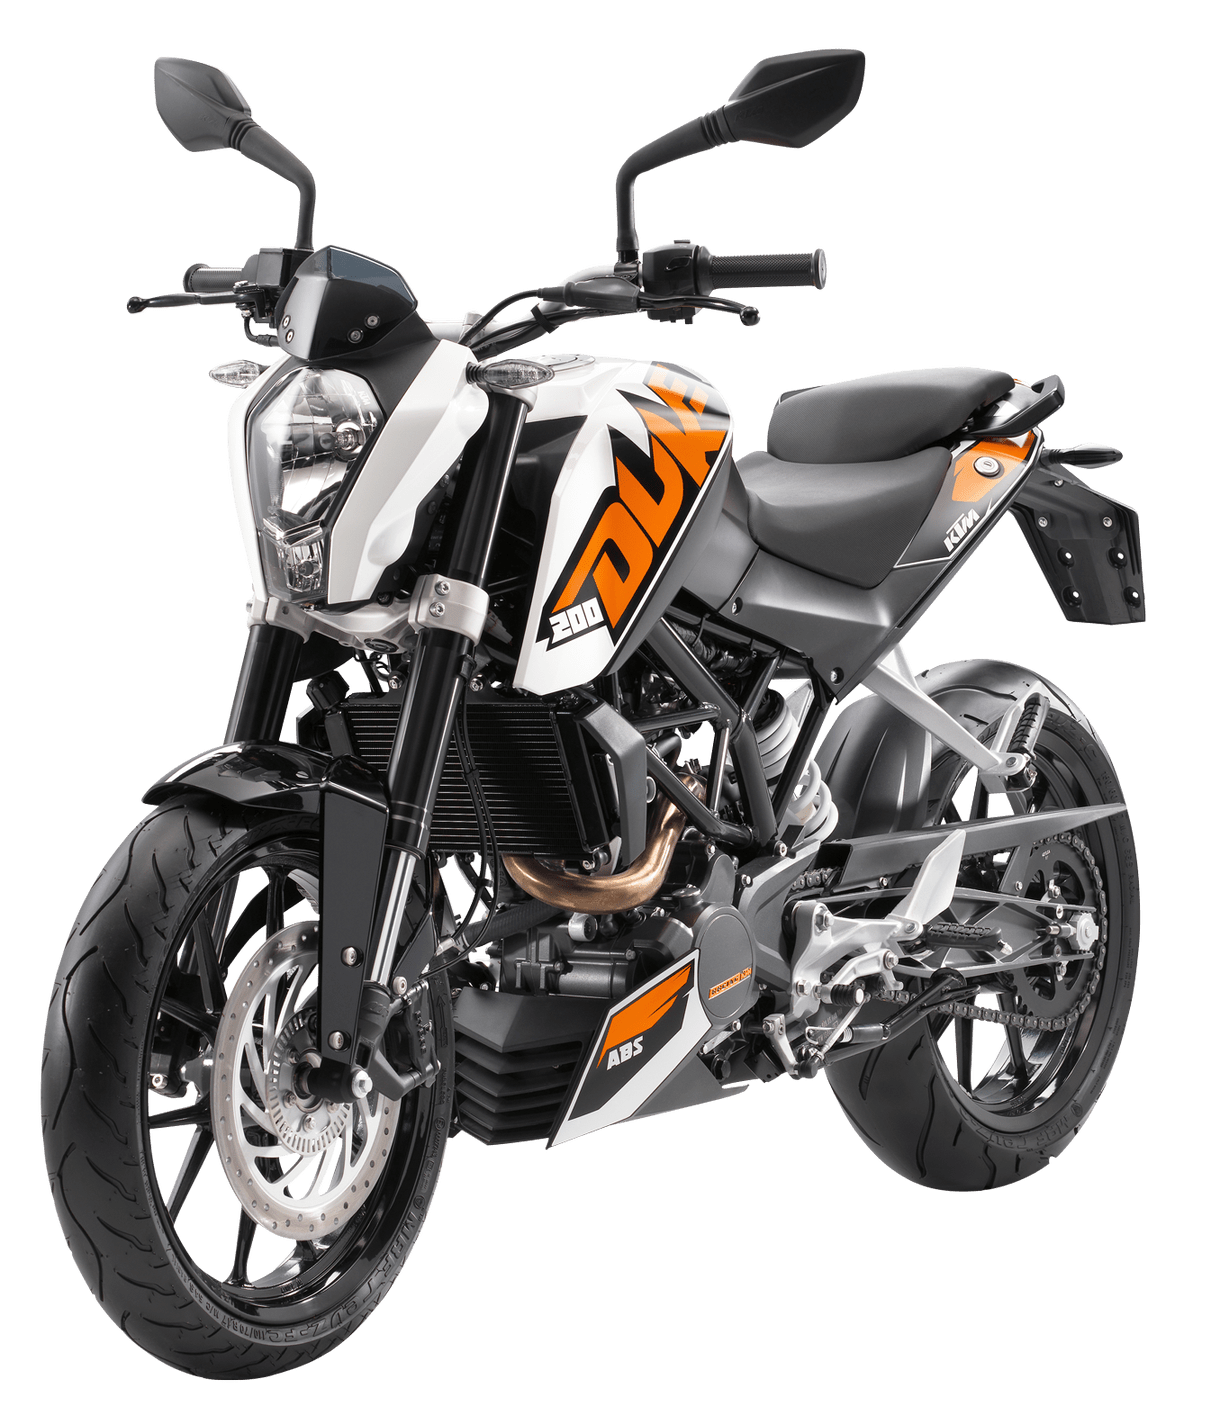 Bike Png 2018 For Picsart And Photoshop New Collection.